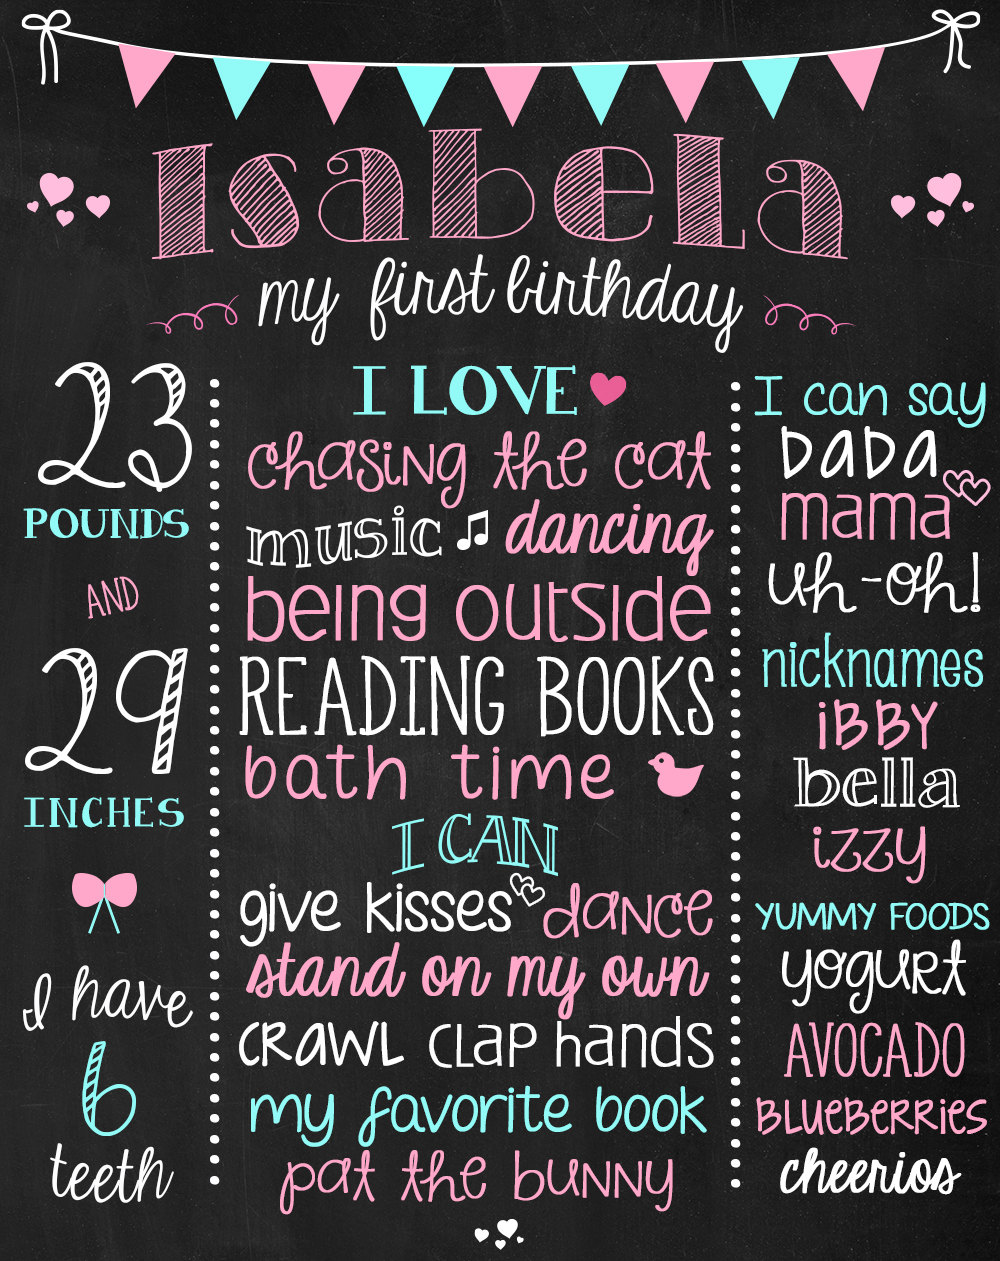 birthday poster board ideas ; 21st_birthday_poster_list_picture_ideas_with_birthday_flowers_0